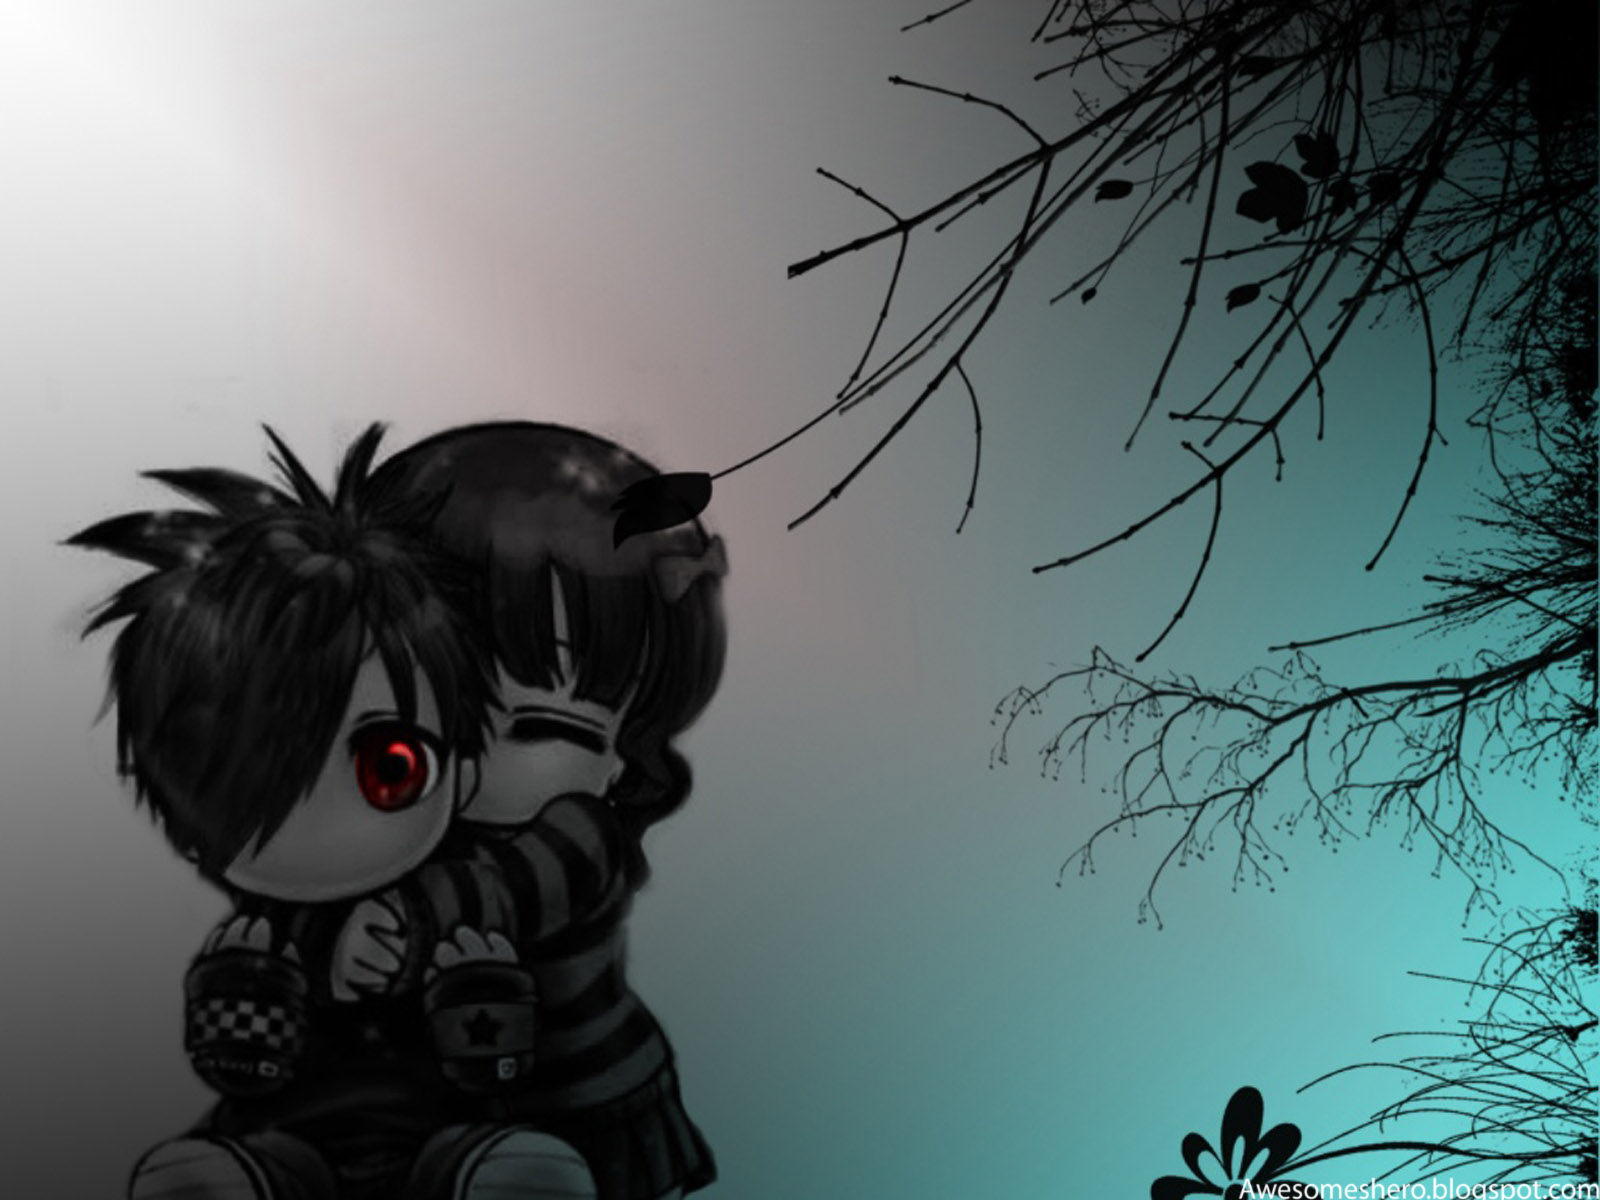 Emo wallpapers free download awesome wallpapers - Anime images download ...